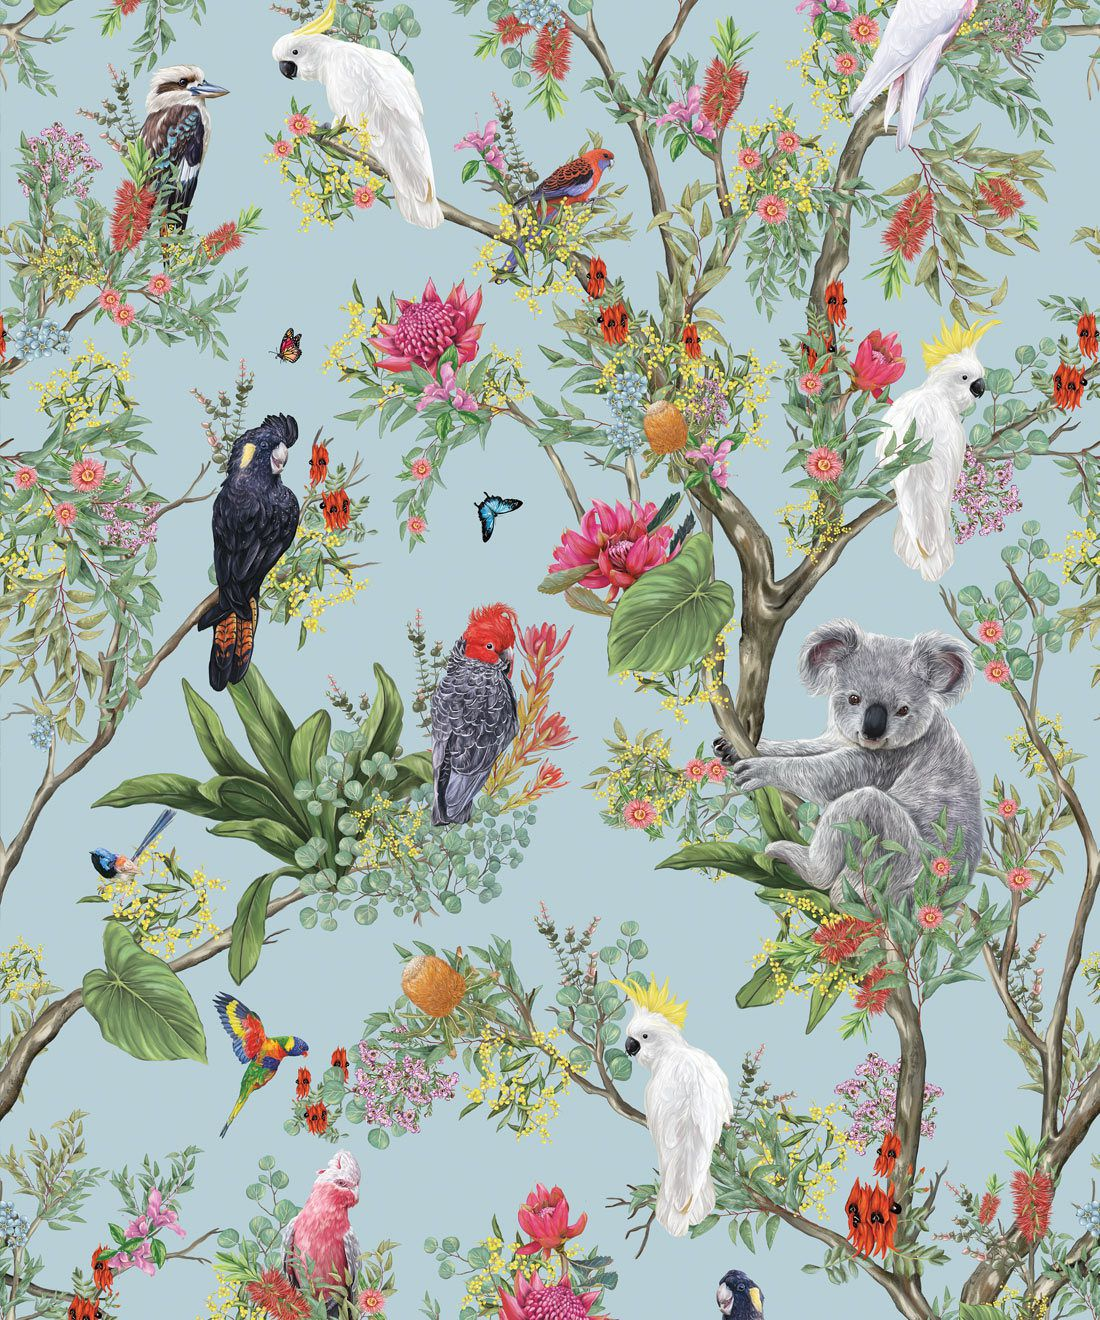 Australia Wallpaper • Cockatoos, Koalas, Parrots, Finches • Milton & King Europe • Aqua Wallpaper Swatch